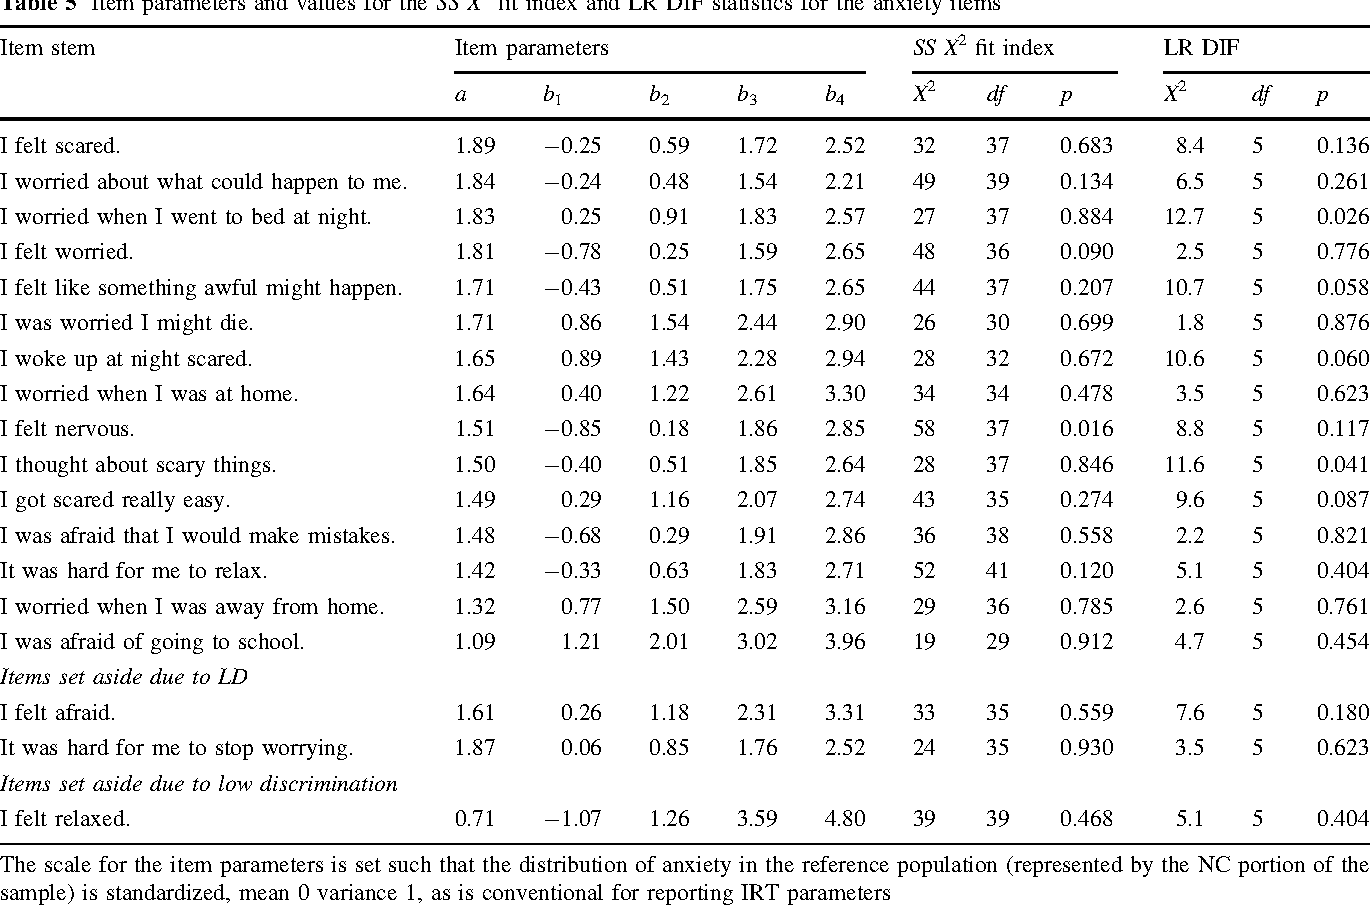 Table 5 Item parameters and values for the SS X2 fit index and LR DIF statistics for the anxiety items Item stem Item parameters SS X2 fit index LR DIF